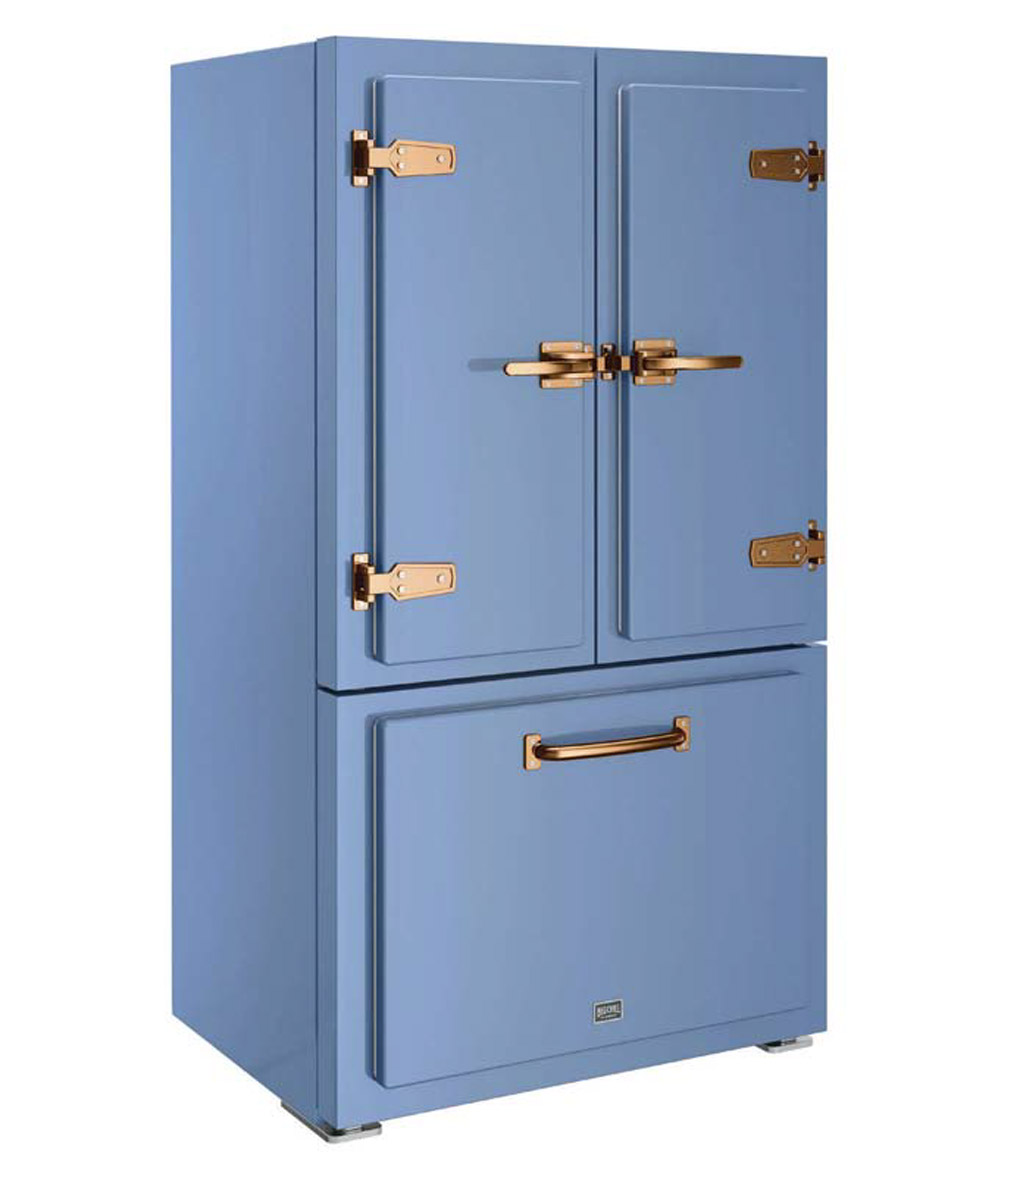 Classic fridge in French blue with copper detailing and hardware.